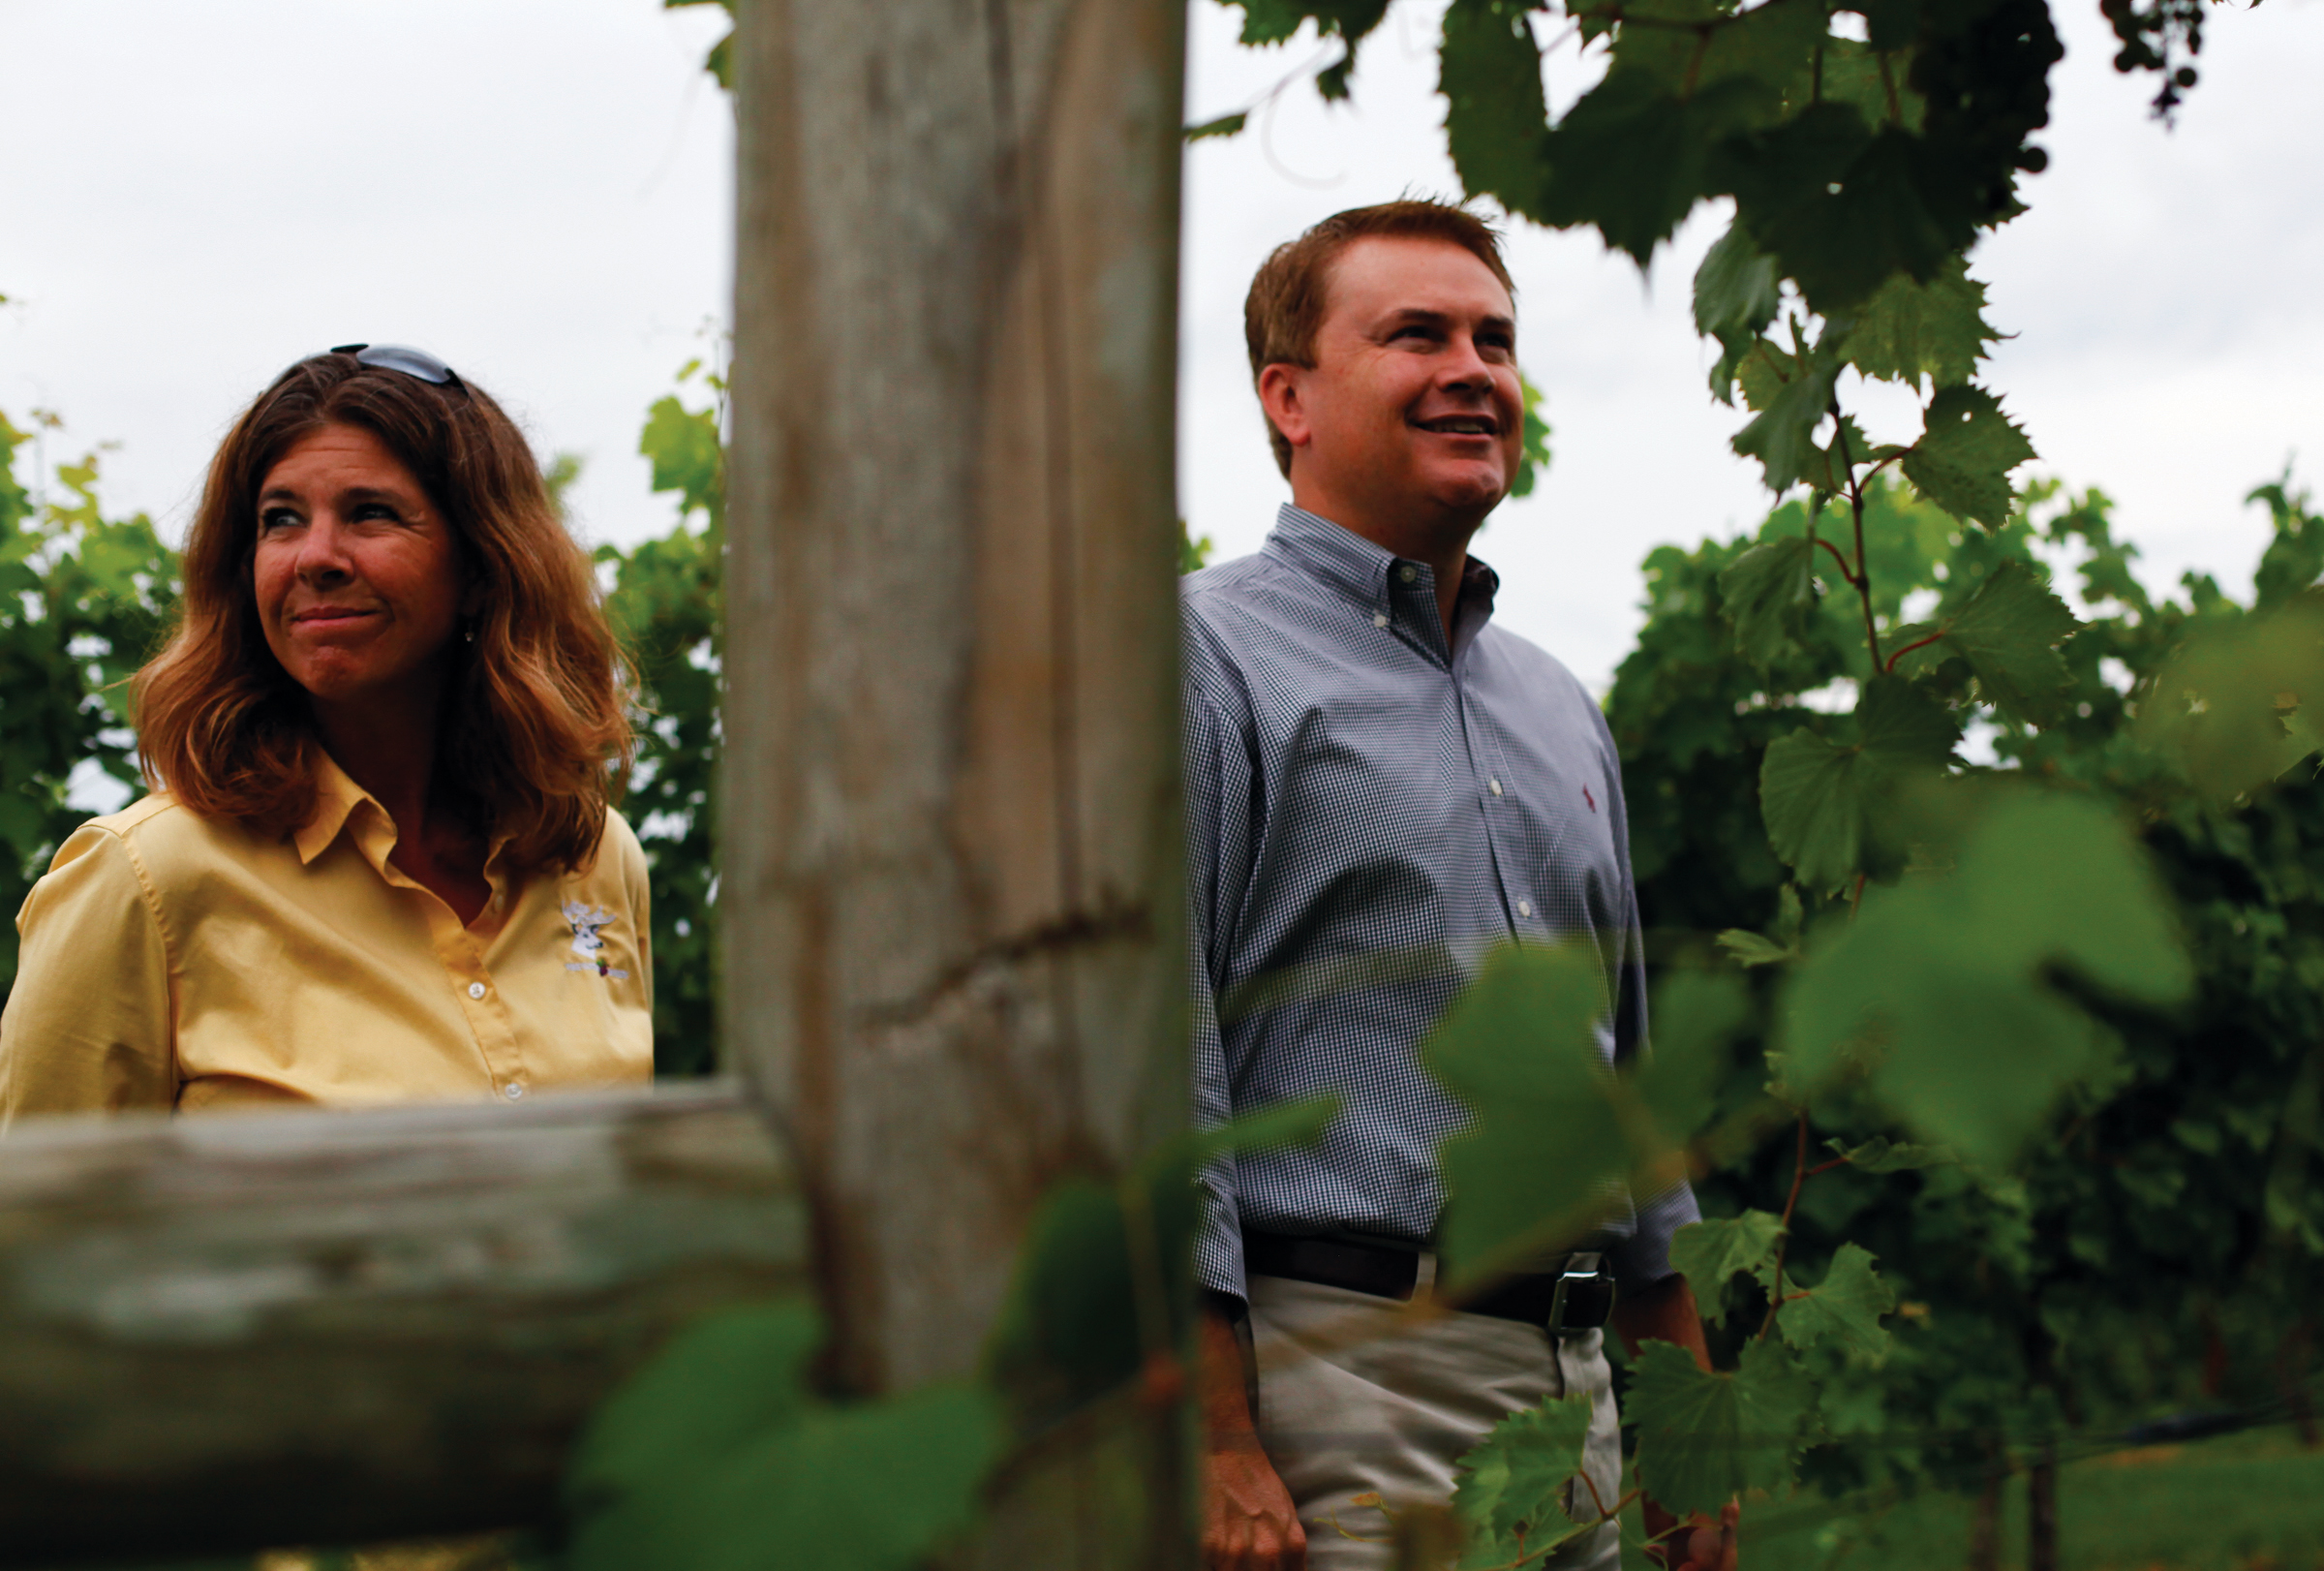 """Jason Comer, Kentucky's Commissioner of Agriculture, right, looks over grape vines at White Buck Vineyards and Winey with owner Carla White. Comer's visit was part of a 13 county tour of agriculture in western Kentucky.                Normal.dotm    0    0    1    31    181    Union County High School    1    1    222    12.0                        0    false          18 pt    18 pt    0    0       false    false    false                                           /* Style Definitions */ table.MsoNormalTable {mso-style-name:""""Table Normal""""; mso-tstyle-rowband-size:0; mso-tstyle-colband-size:0; mso-style-noshow:yes; mso-style-parent:""""""""; mso-padding-alt:0in 5.4pt 0in 5.4pt; mso-para-margin:0in; mso-para-margin-bottom:.0001pt; mso-pagination:widow-orphan; font-size:12.0pt; font-family:""""Times New Roman""""; mso-ascii-font-family:Cambria; mso-ascii-theme-font:minor-latin; mso-fareast-font-family:""""Times New Roman""""; mso-fareast-theme-font:minor-fareast; mso-hansi-font-family:Cambria; mso-hansi-theme-font:minor-latin; mso-bidi-font-family:""""Times New Roman""""; mso-bidi-theme-font:minor-bidi;}"""